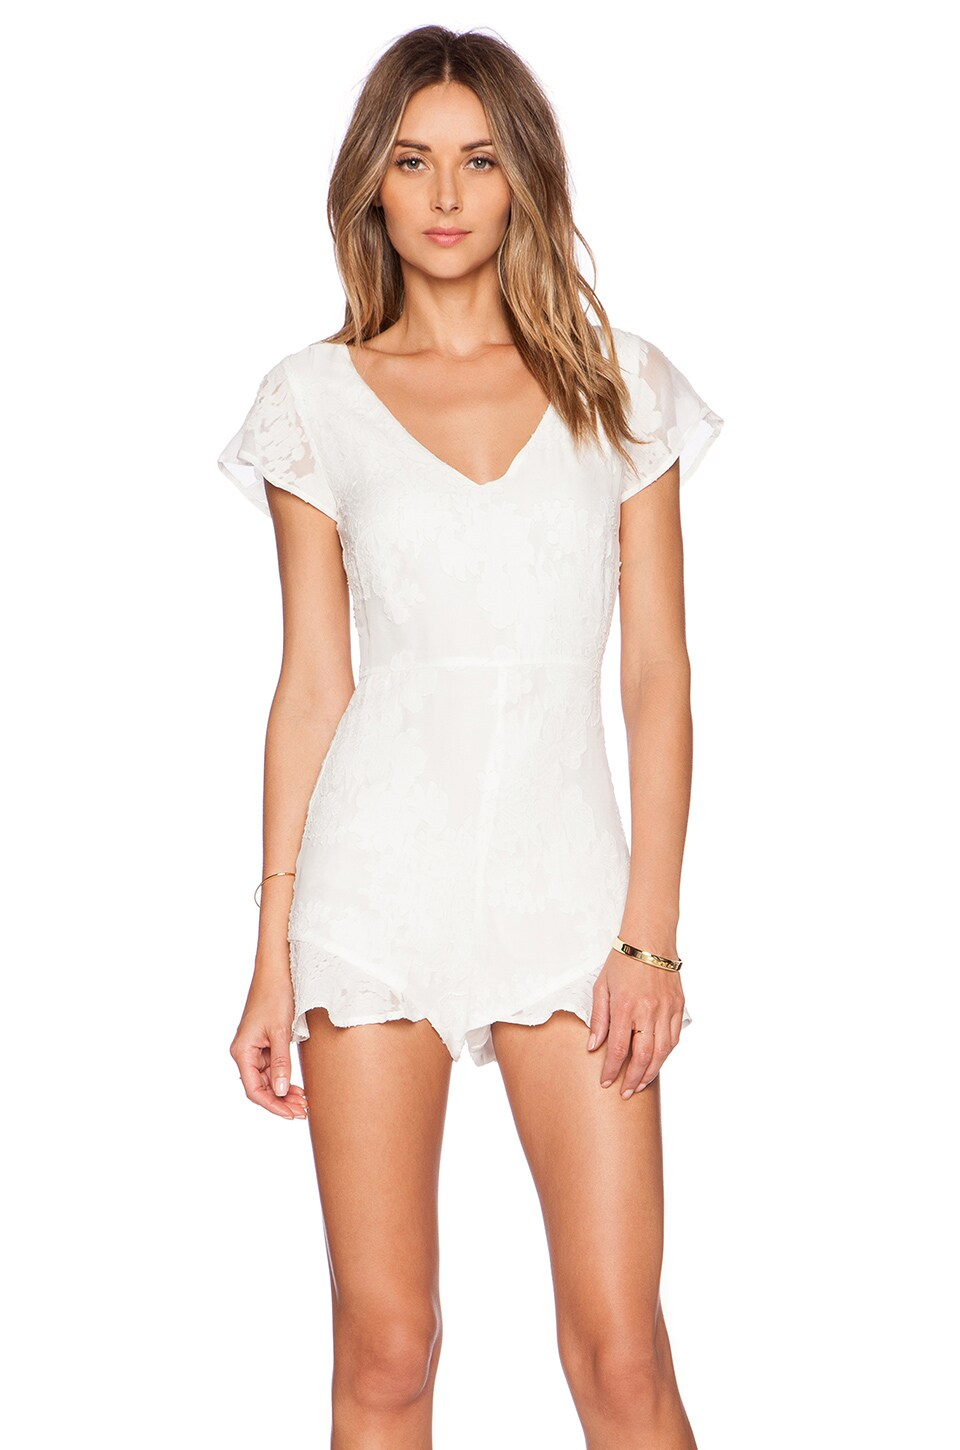 For Love & Lemons Pina Colada Romper in White